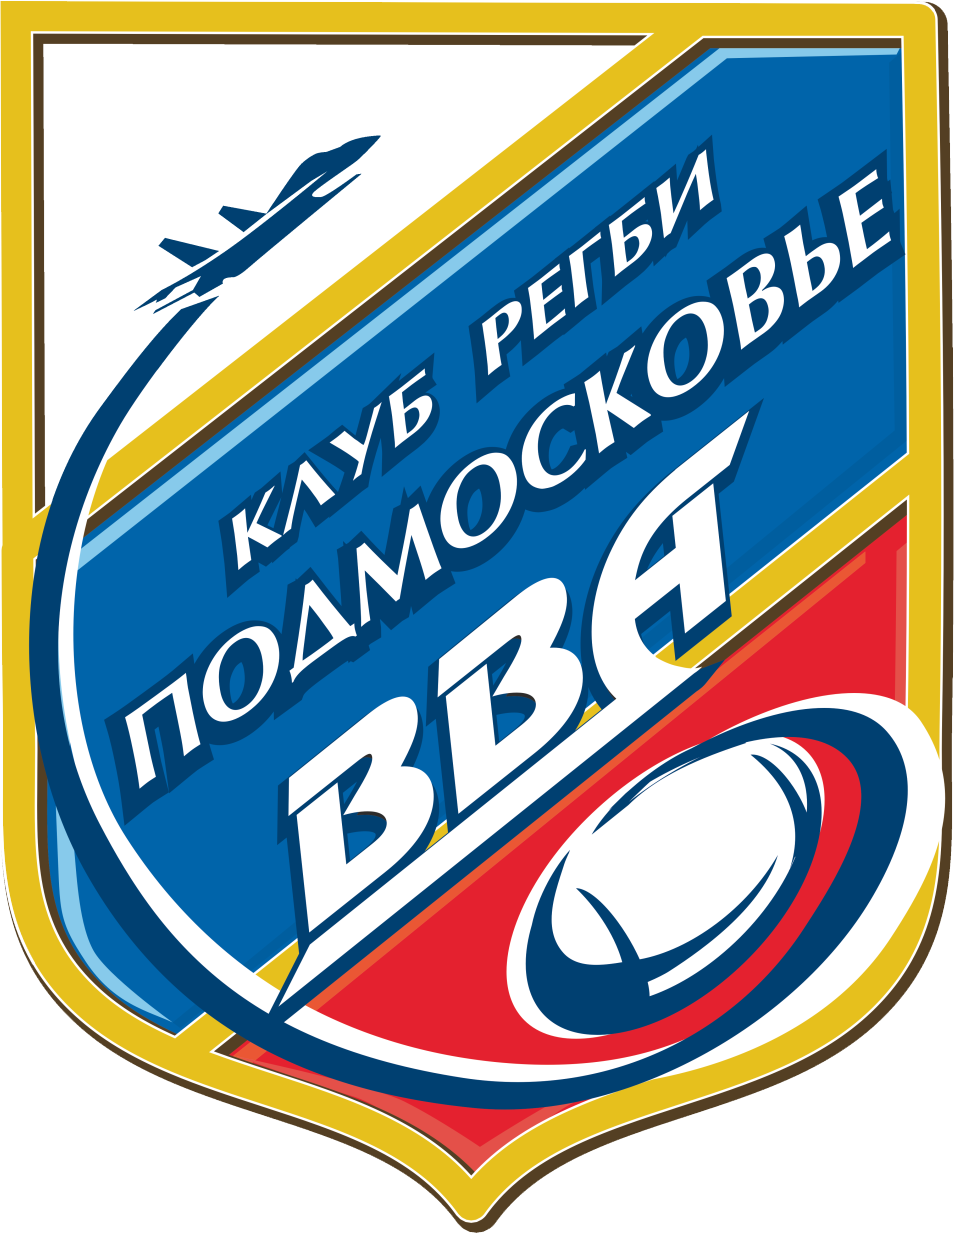 Welcome Rugby Players Expatriates To Join The Vva Podoskovie Team In Monino Russia In 2020 Rugby Rugby Players Rugby Club